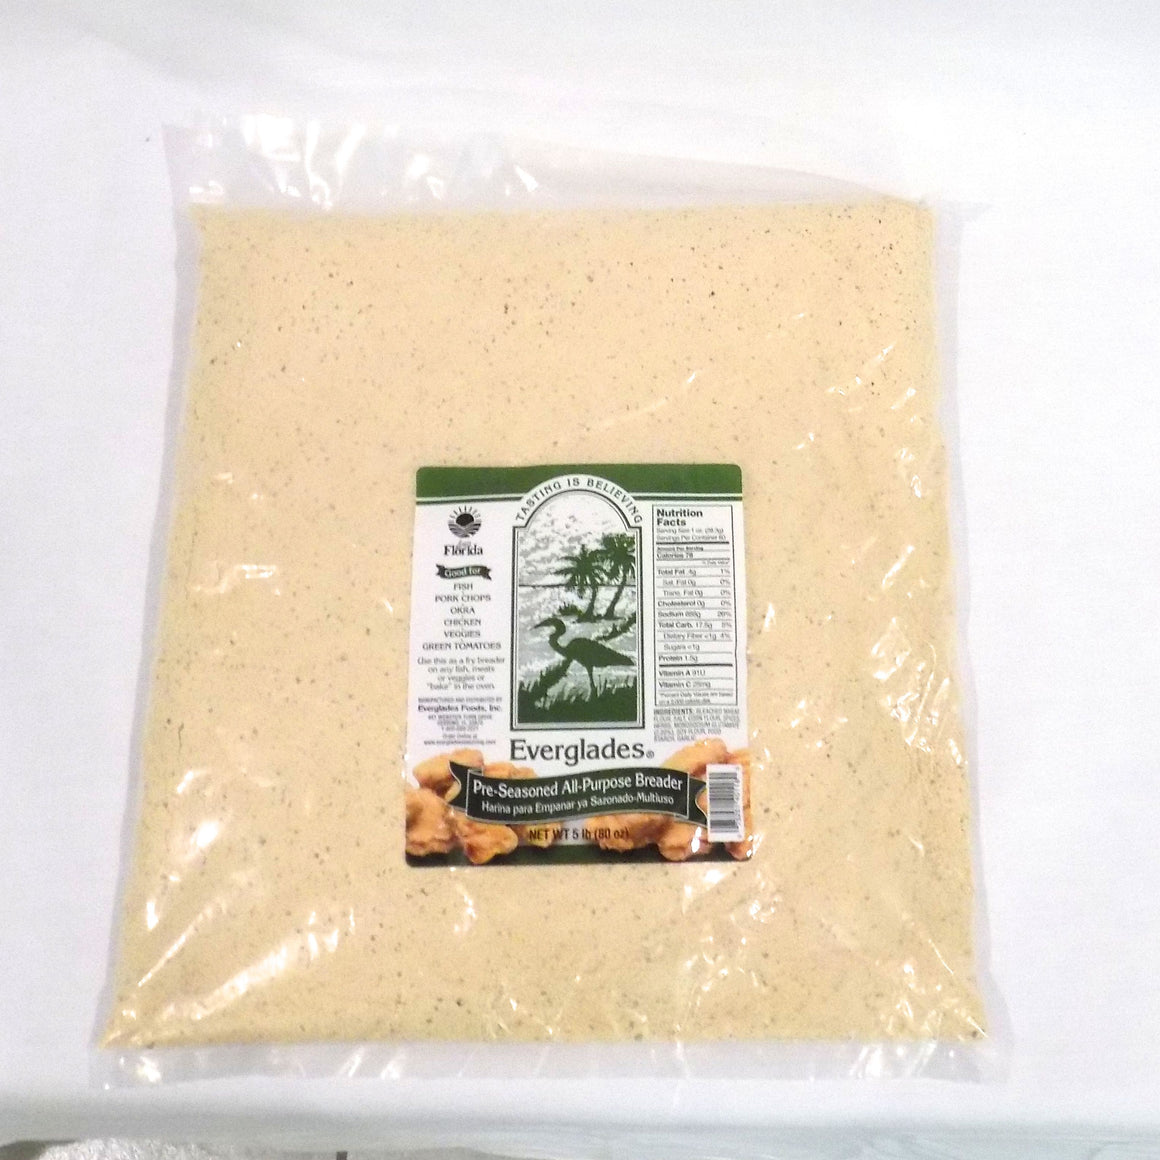 Everglades 5 lb Pre-Seasoned All Purpose Breading Mix Bag